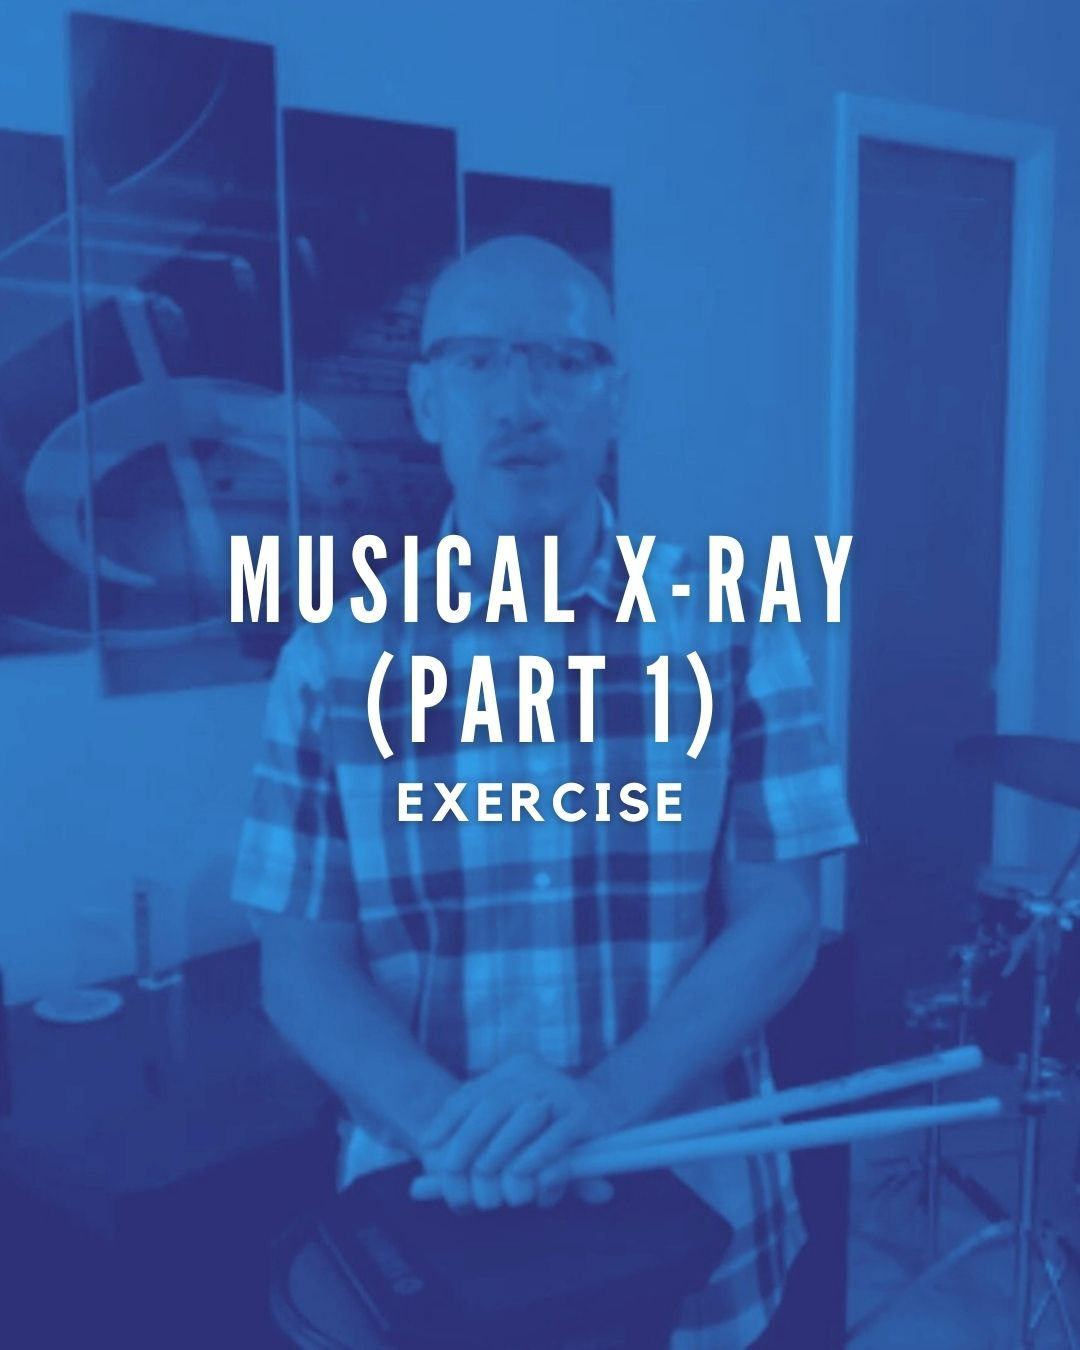 Musical X-ray Pt. 1